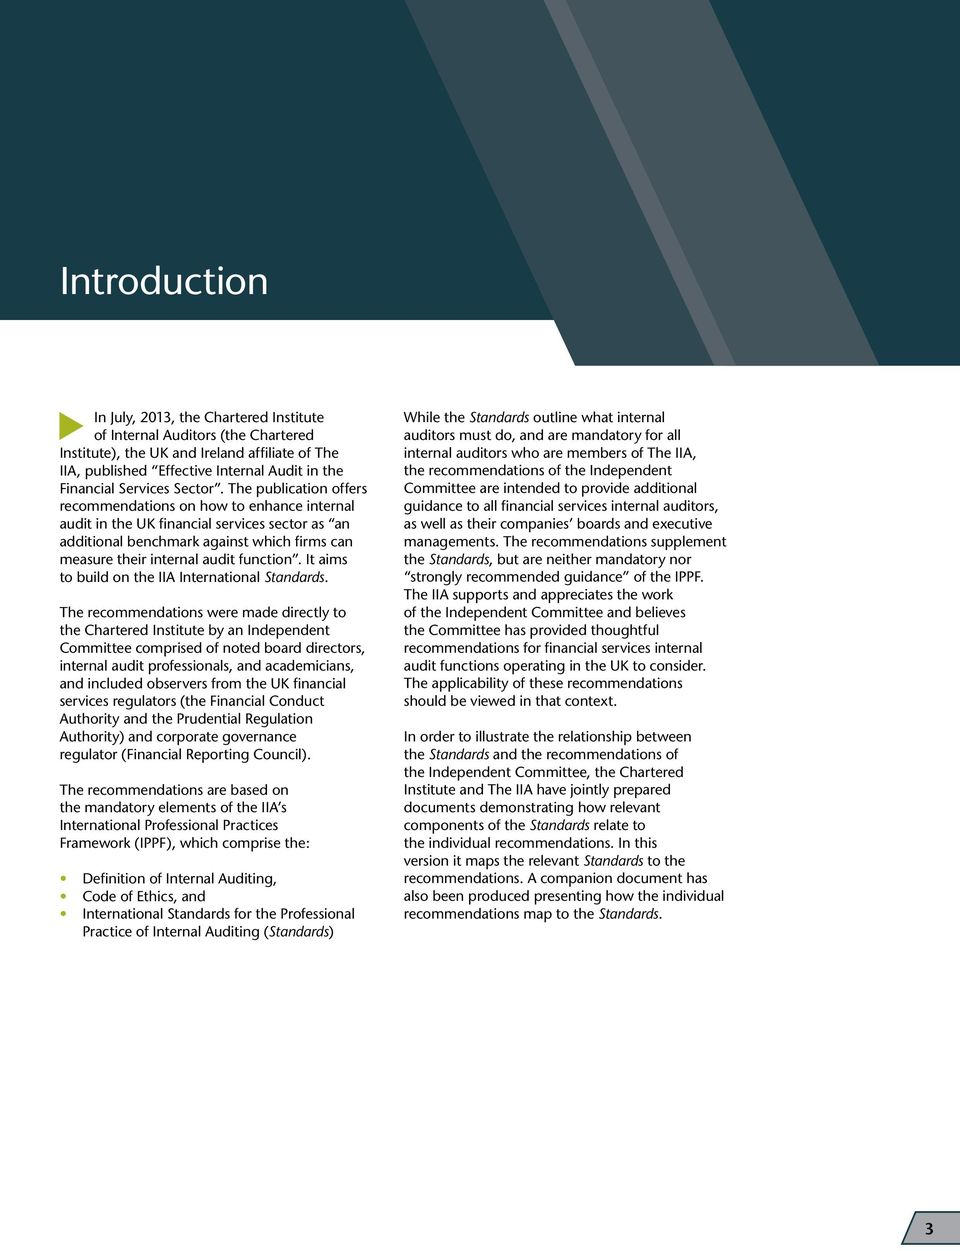 The publication offers recommendations on how to enhance internal audit in the UK financial services sector as an additional benchmark against which firms can measure their internal audit function.